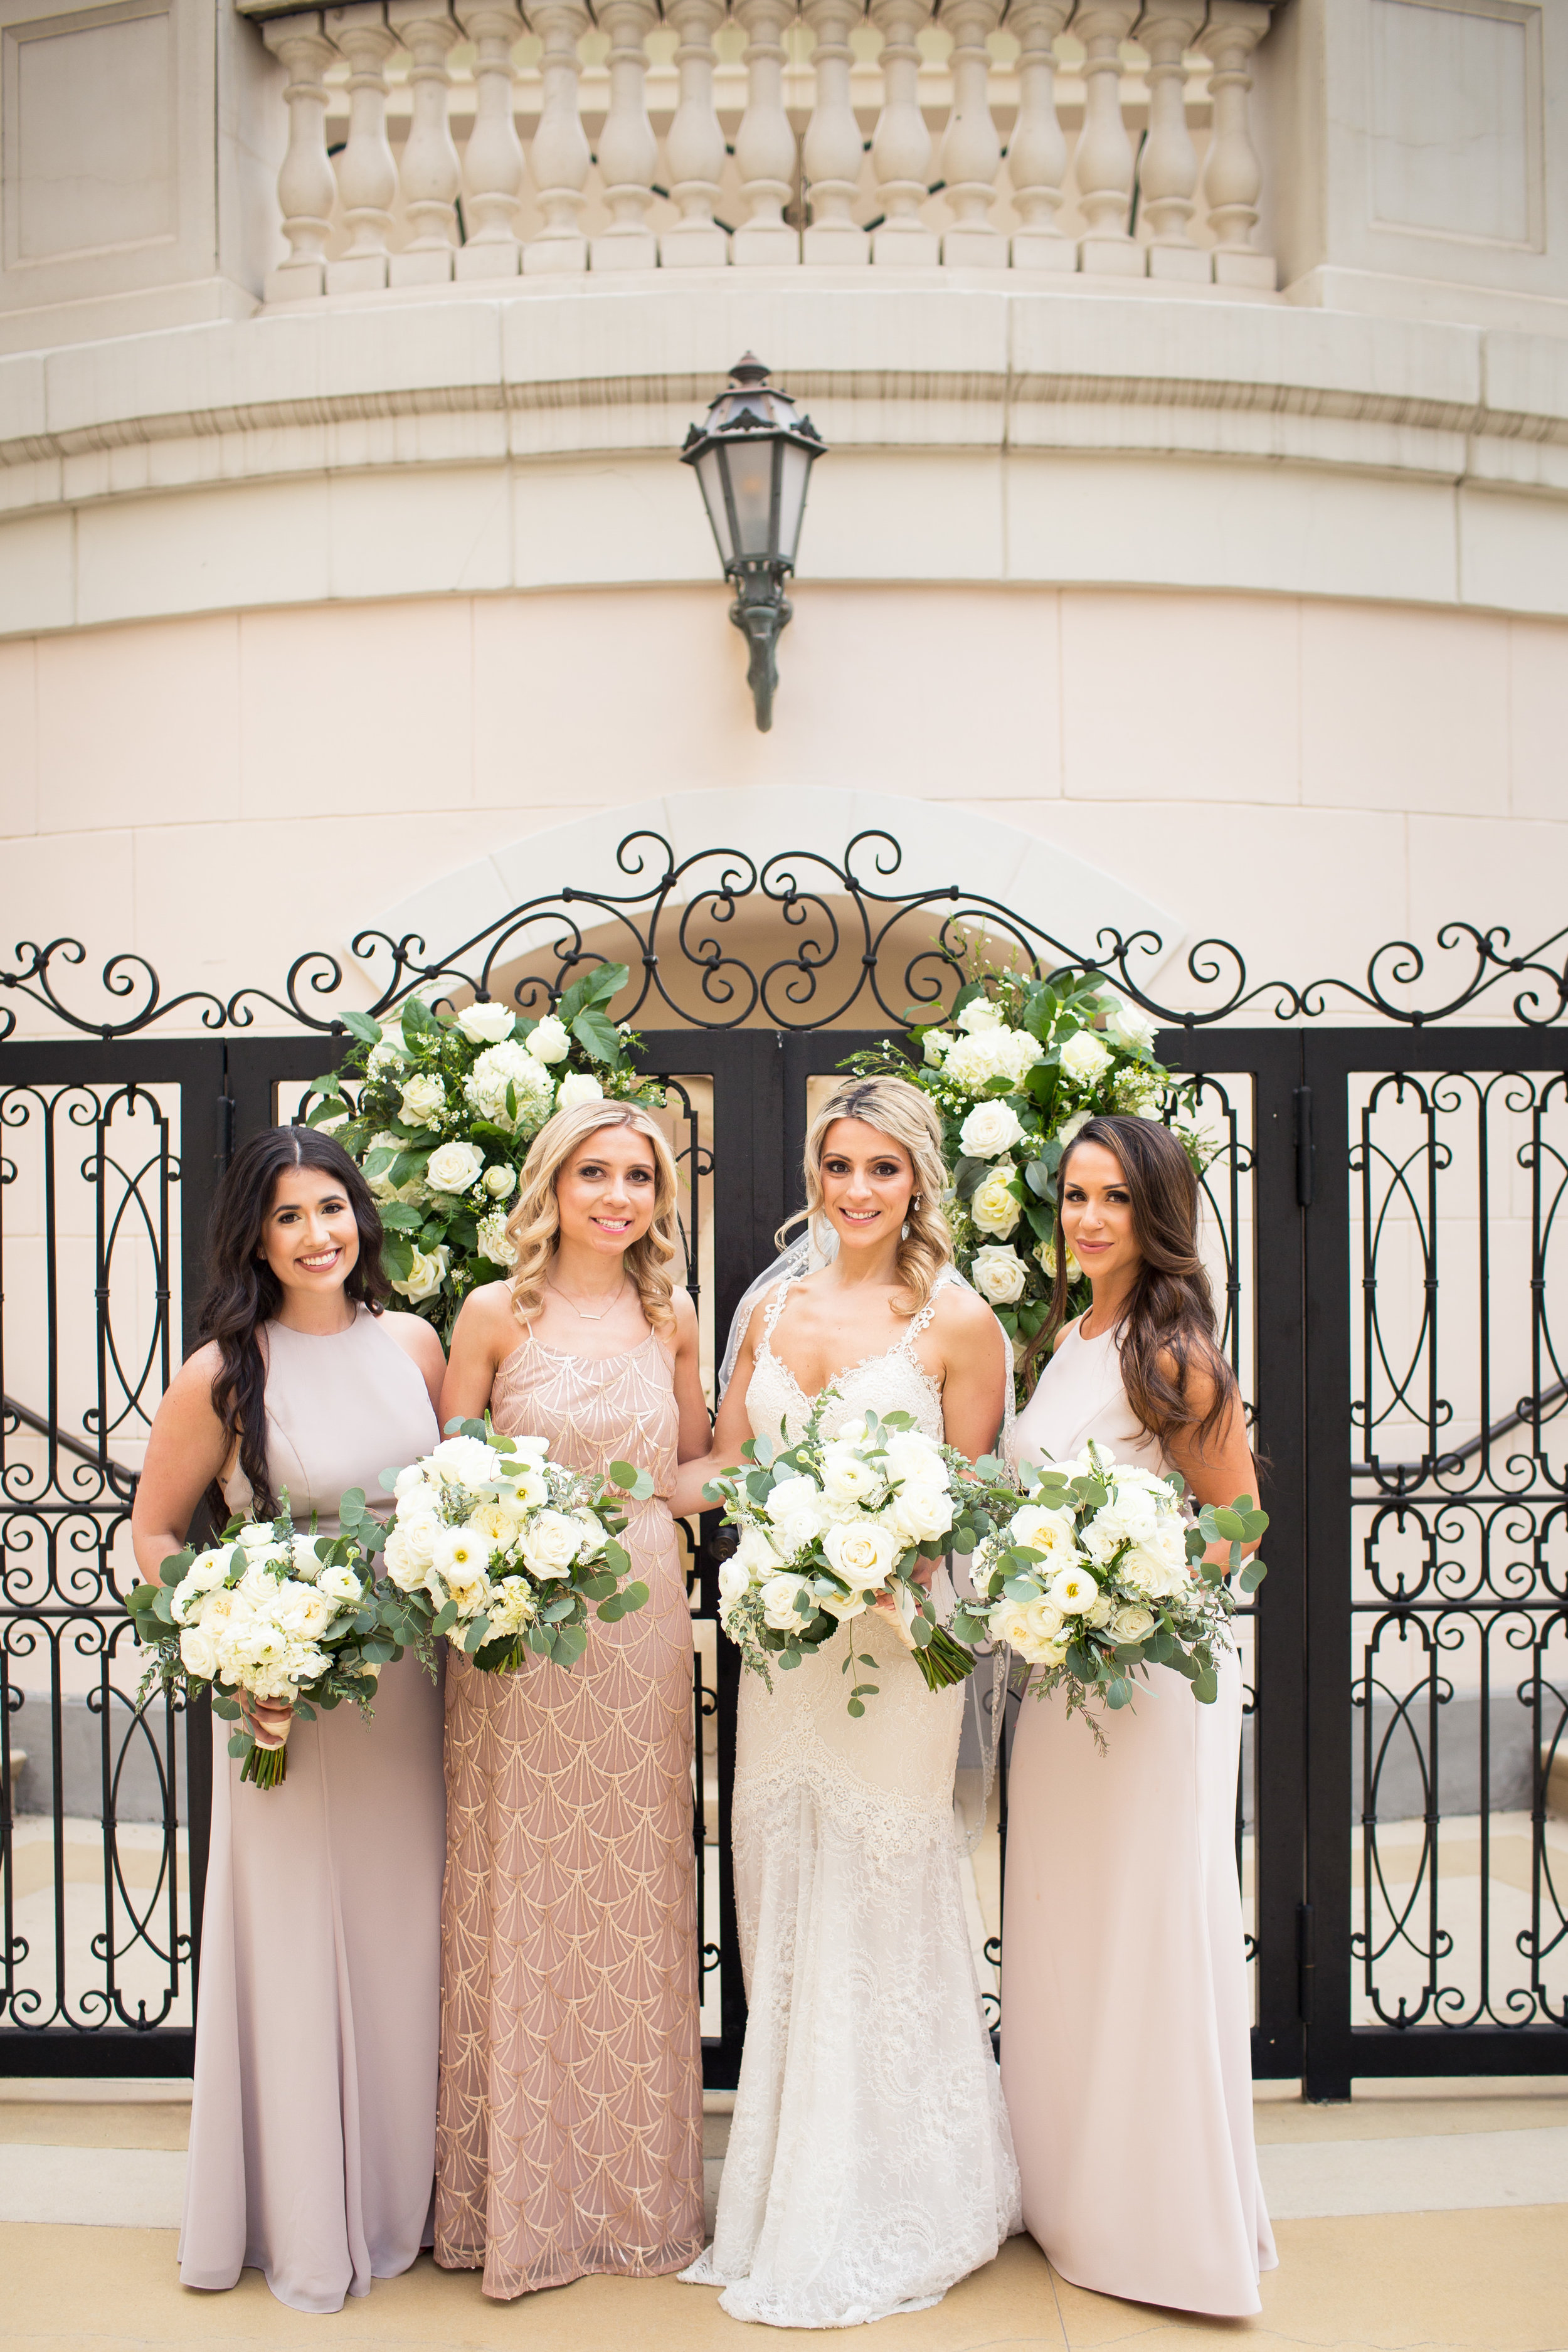 Bridal party in blush and champagne dresses.Wedding Planner:  Andrea Eppolito Events   | Photography  D2 Tuscan Wedding Photography  | Videography  M Place Productions  | Venue & Catering:  Bellagio  | Floral & Decor:  Destinations by Design  | Lighting:  LED Unplugged   | Music: Classical Entertainment &  DJ Mike Fox  | Hair & Make Up:  Amelia C & Co